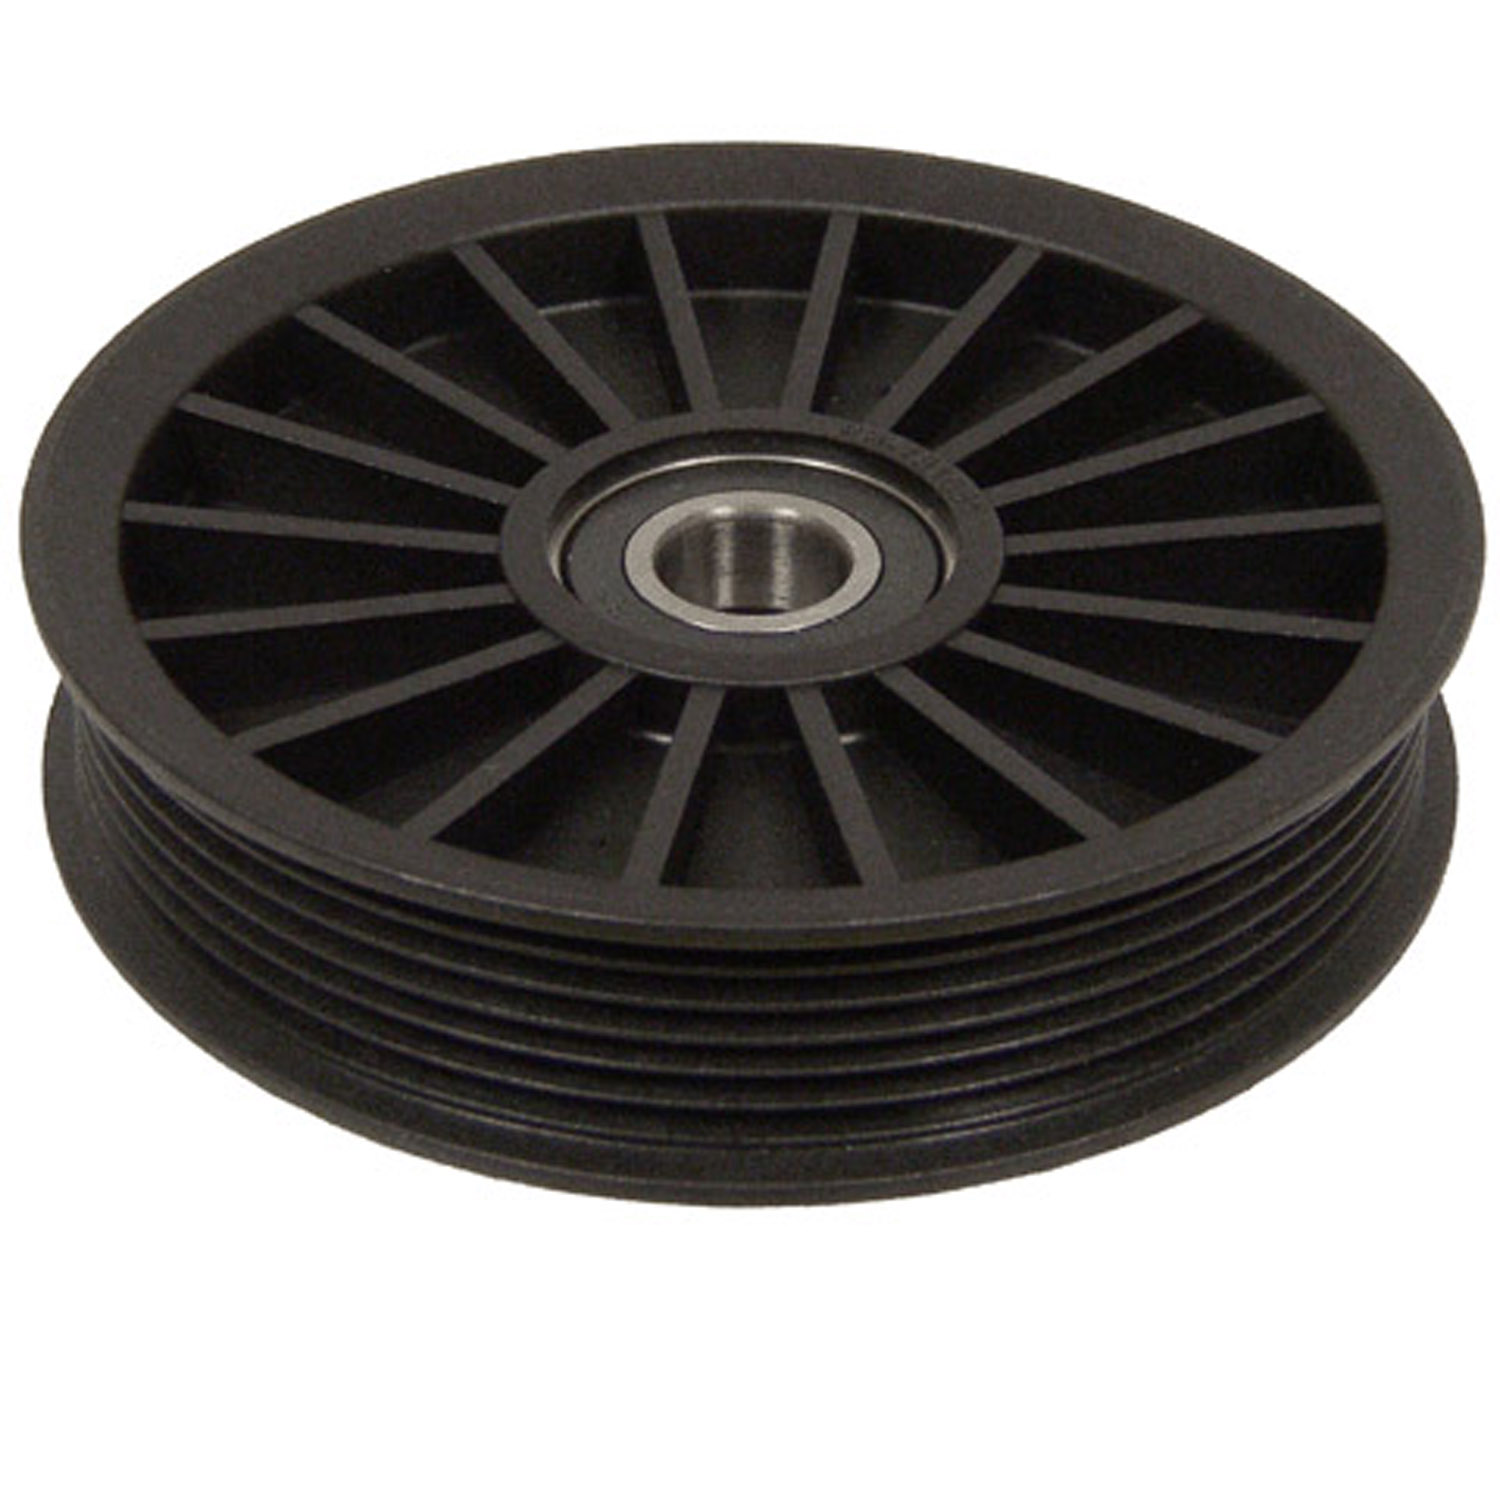 Serpentine Belt Idler Pulley 132MM 6GR FLANGE 1